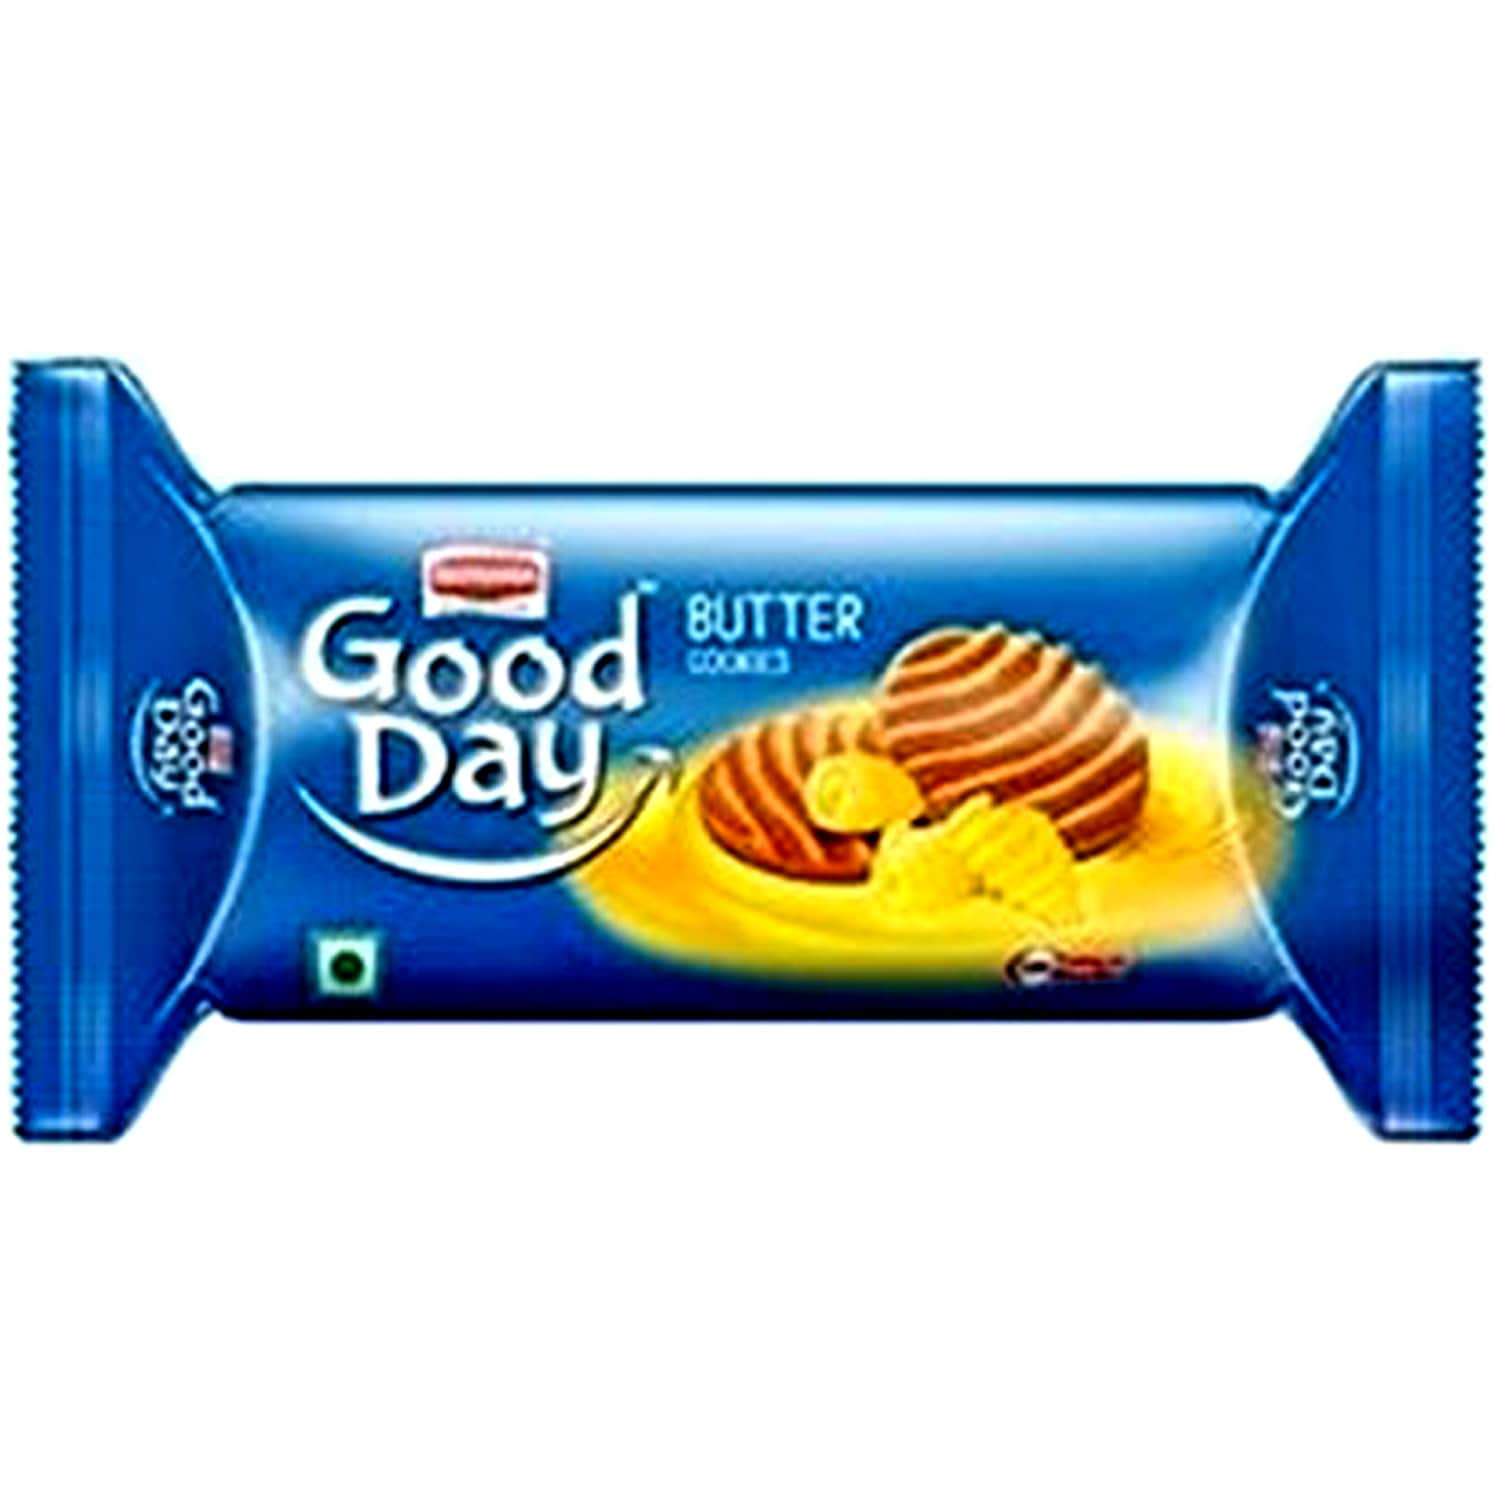 Britania Good Day Butter Biscuits, 100 gm